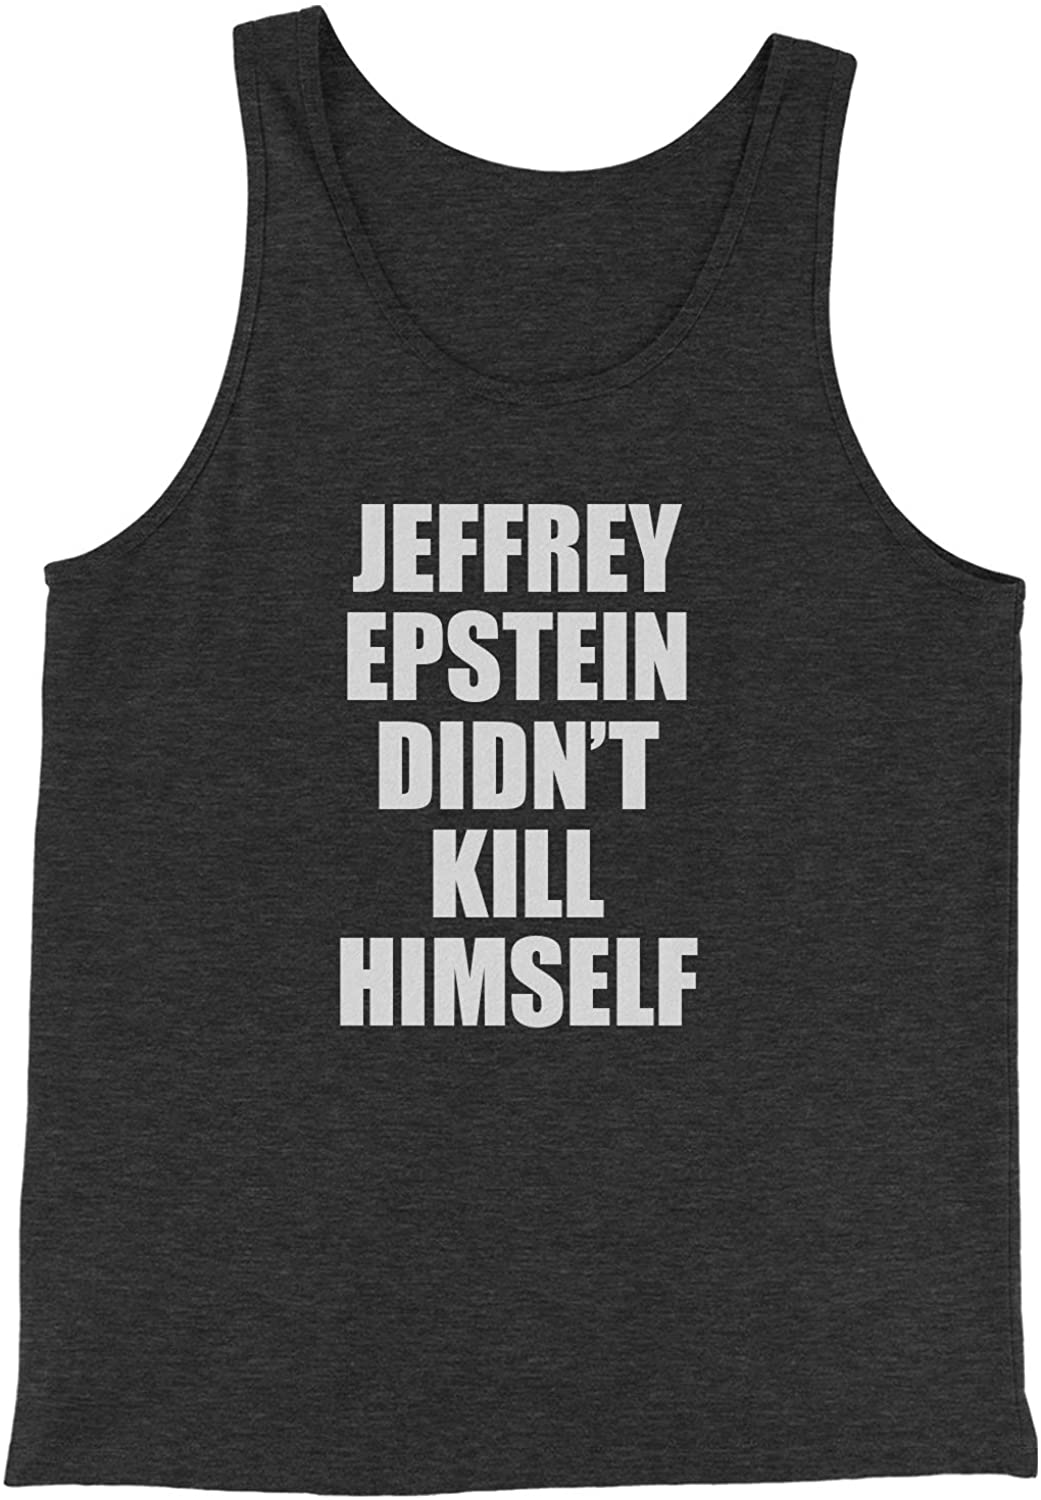 Expression Tees Jeffrey Epstein Didn't Kill Himself Jersey Tank Top for Men